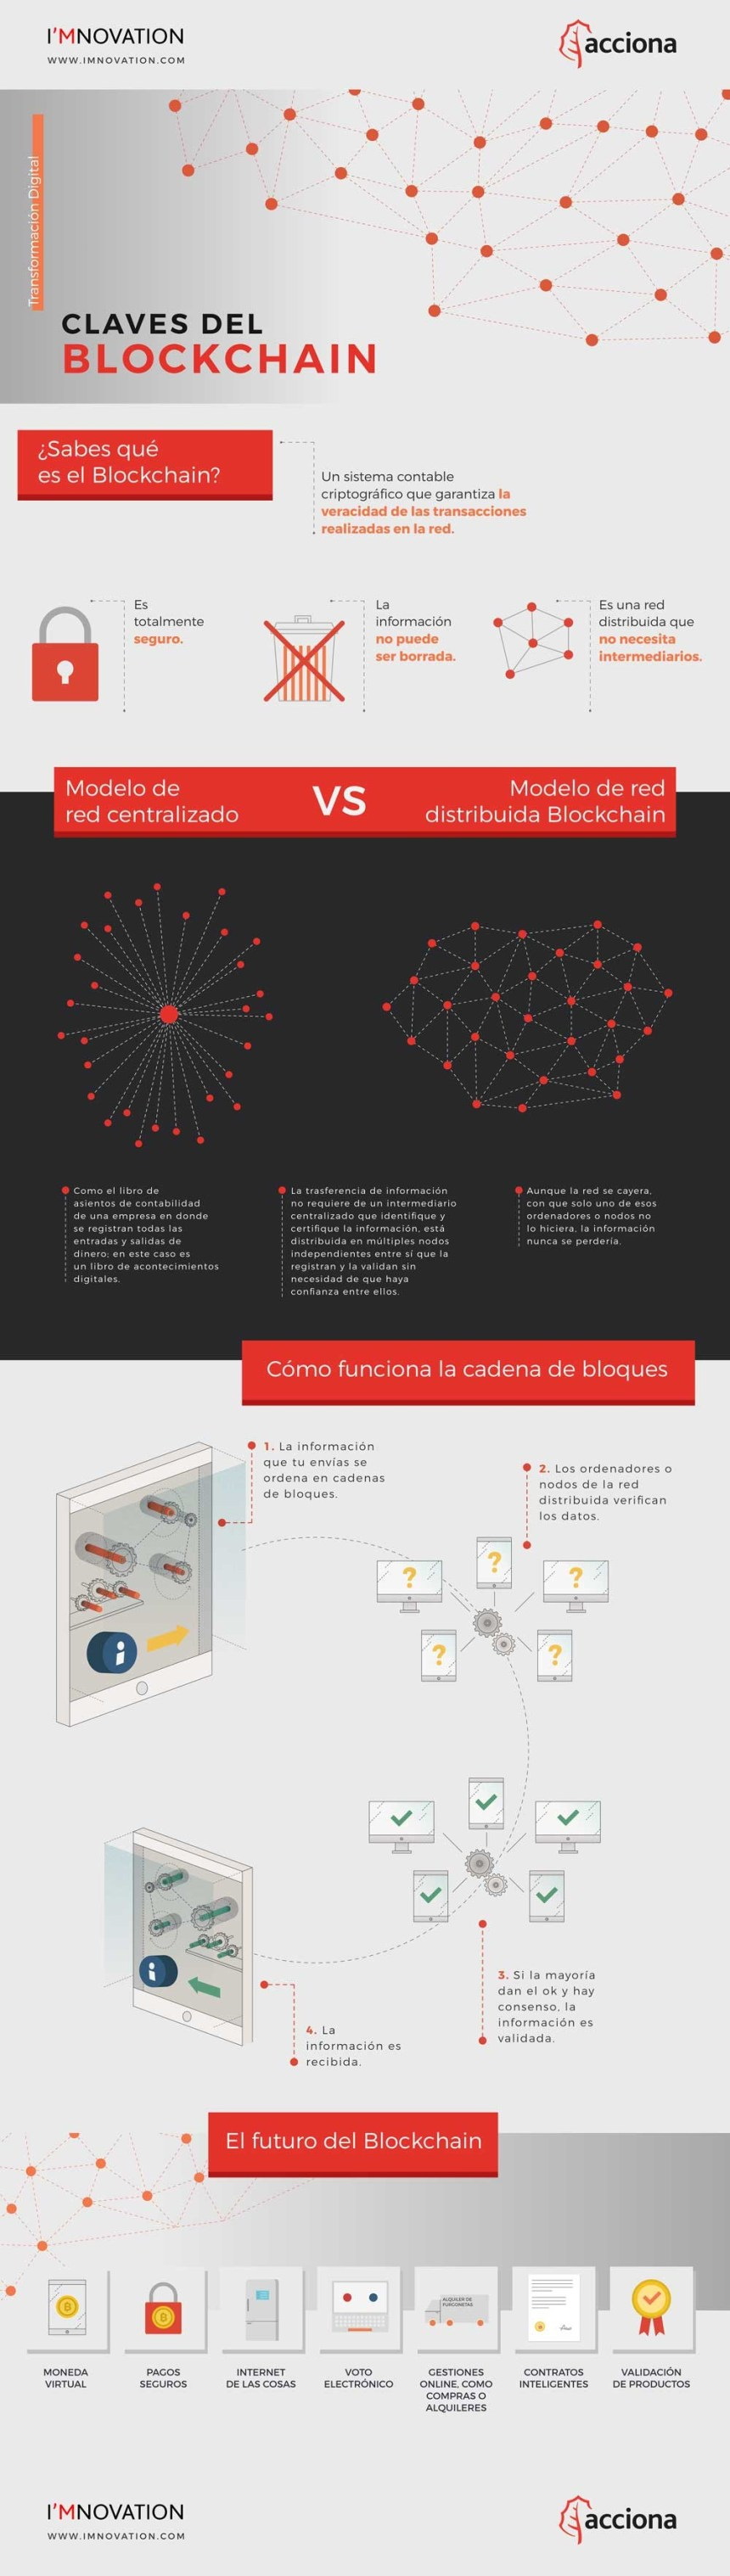 Claves del blockchain